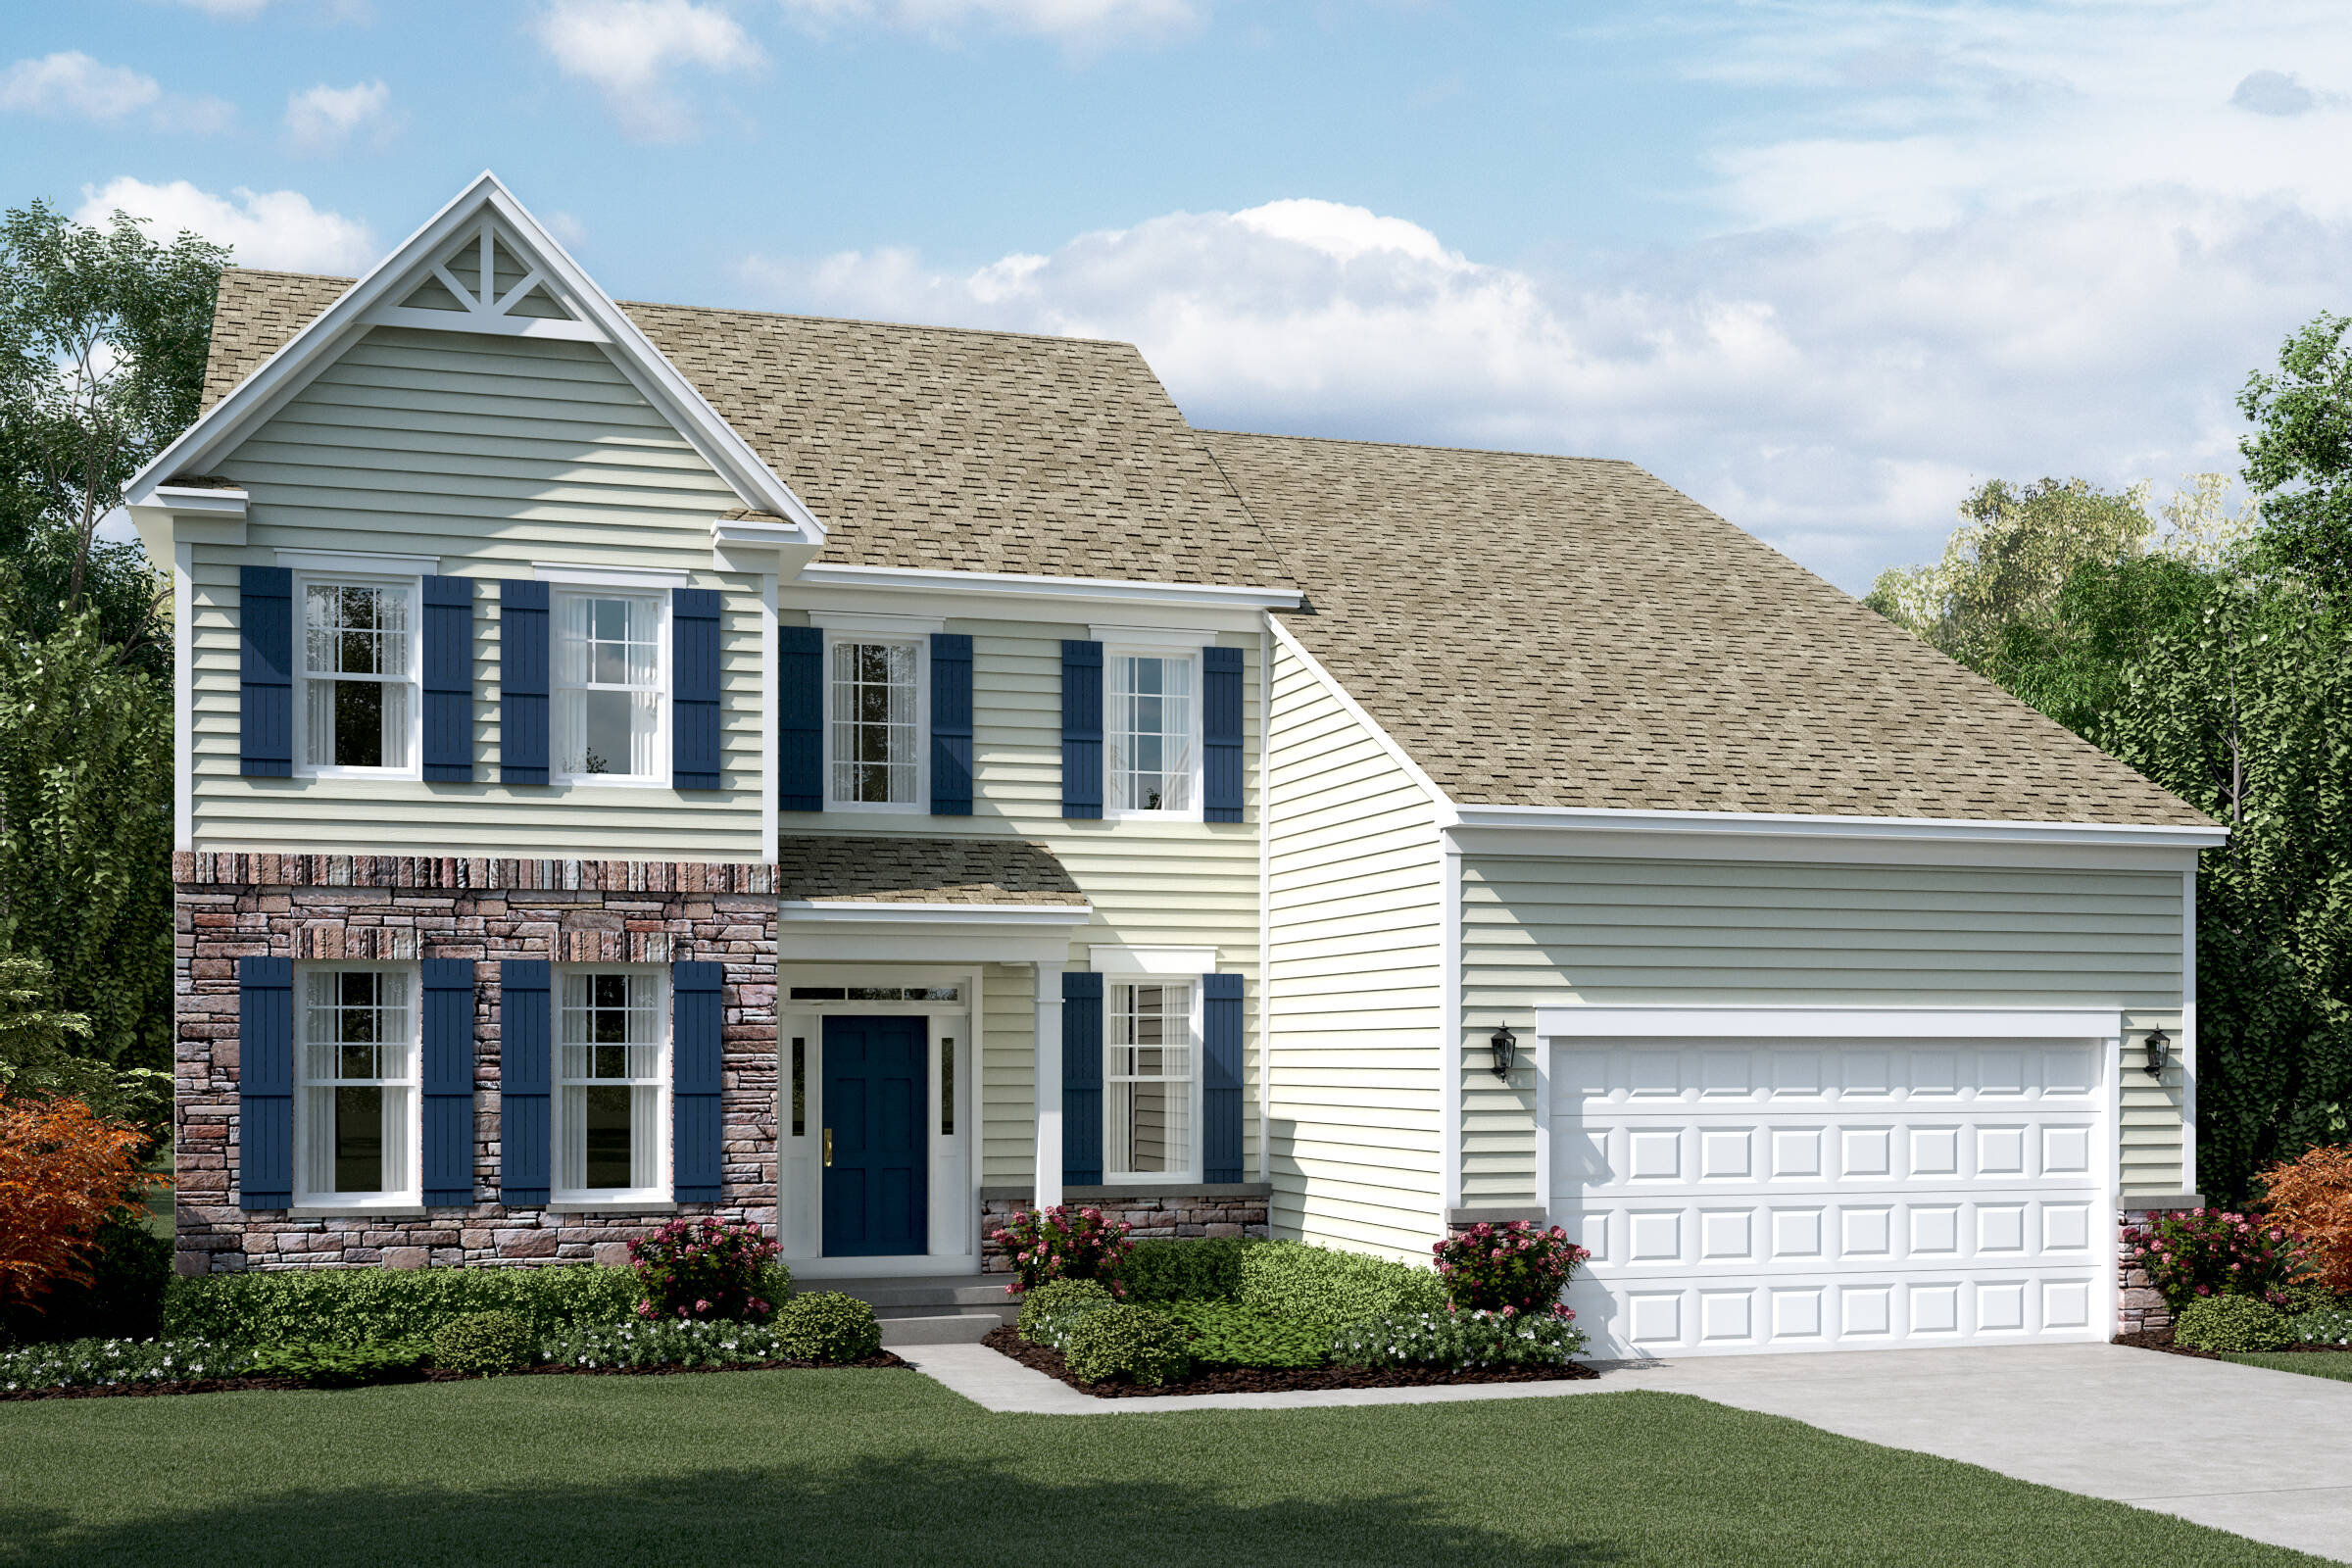 woodbury d stone sagebrook single family homes in south elgin